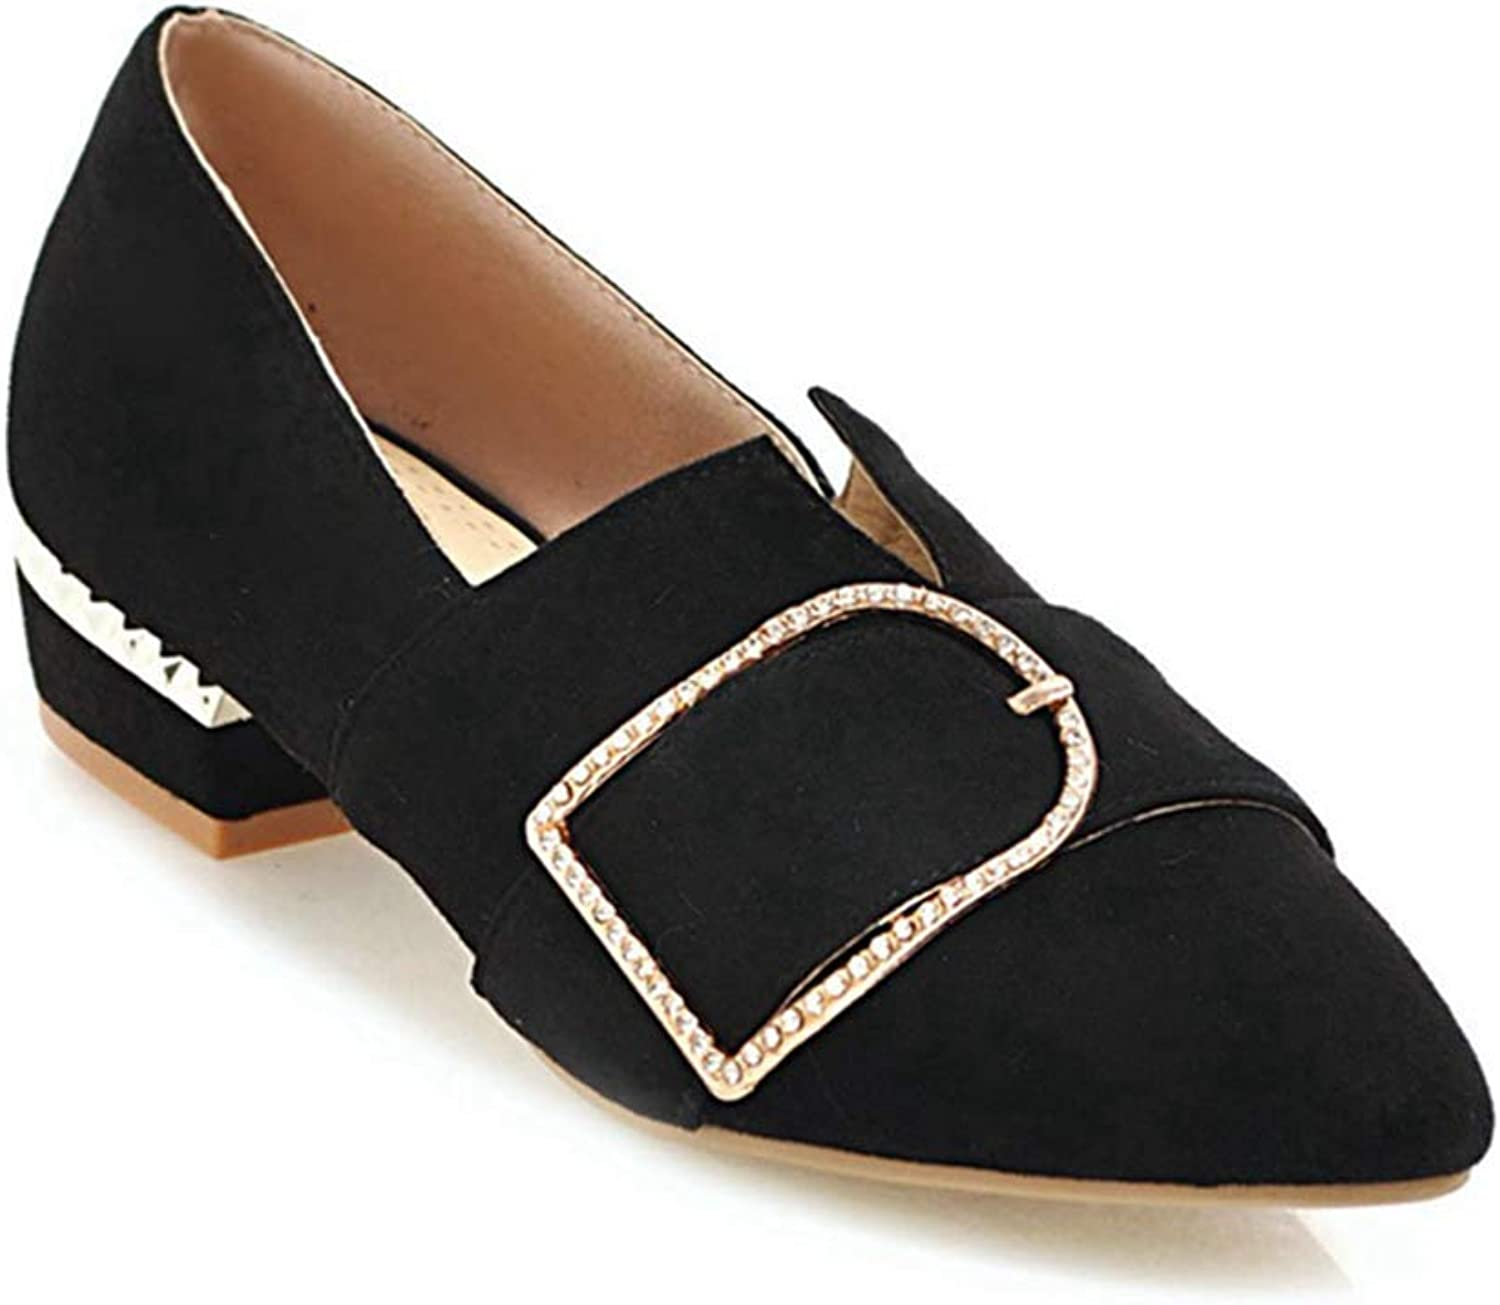 KEREE Women's Buckle Round Toe Flat Pump Loafers Comfort Casual Slip on Low Heel Wlaking Dress shoes